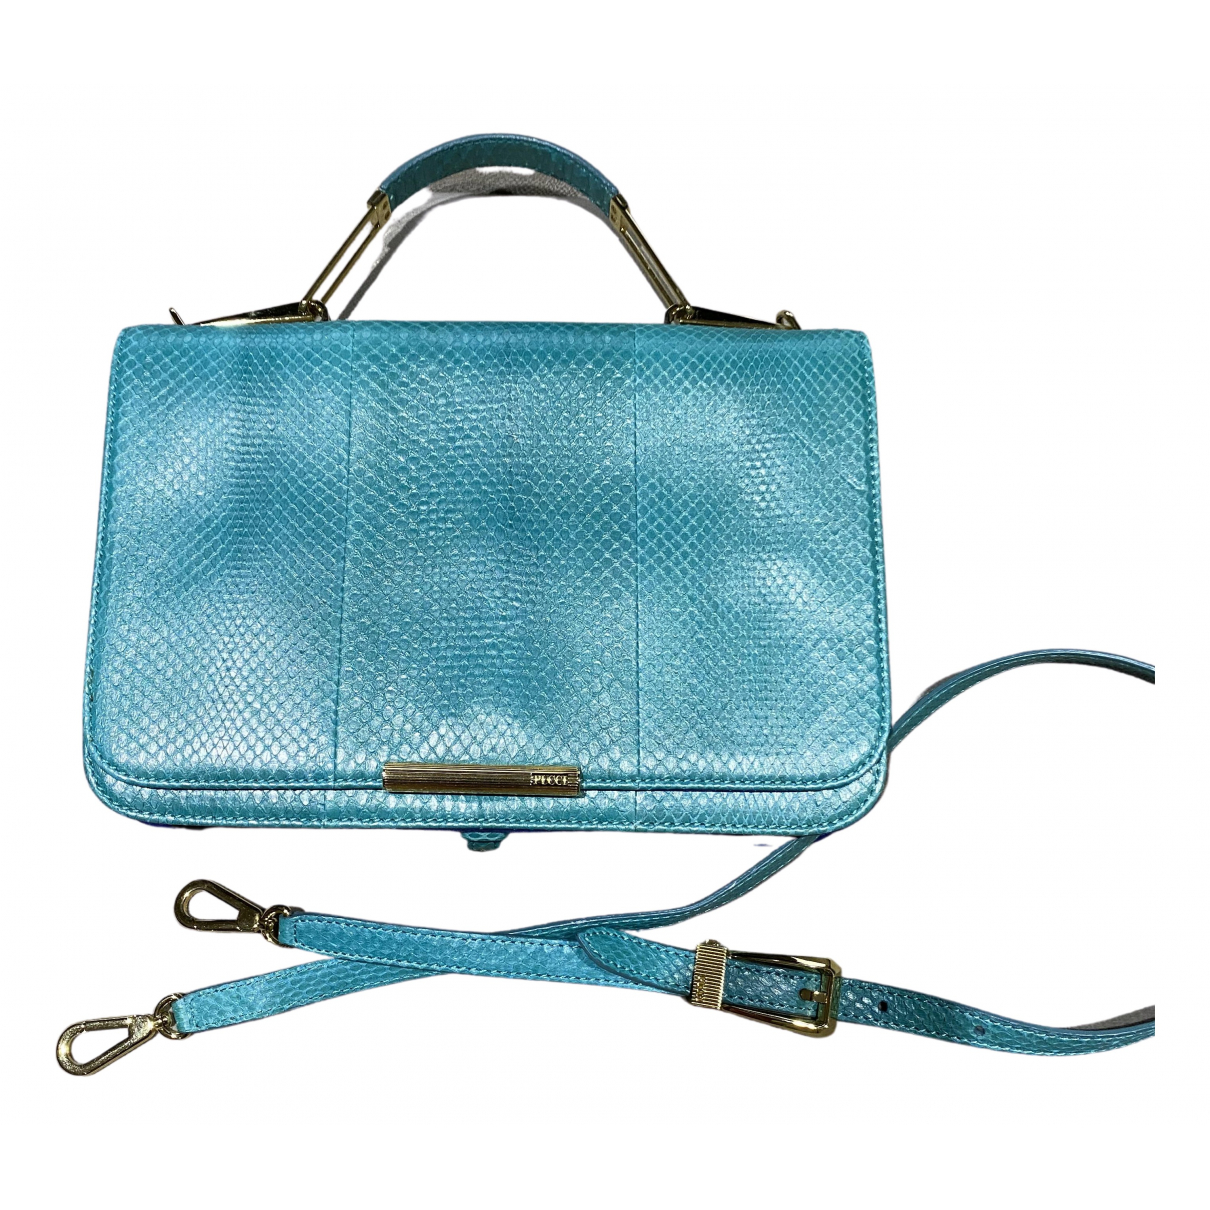 Emilio Pucci N Turquoise Leather handbag for Women N